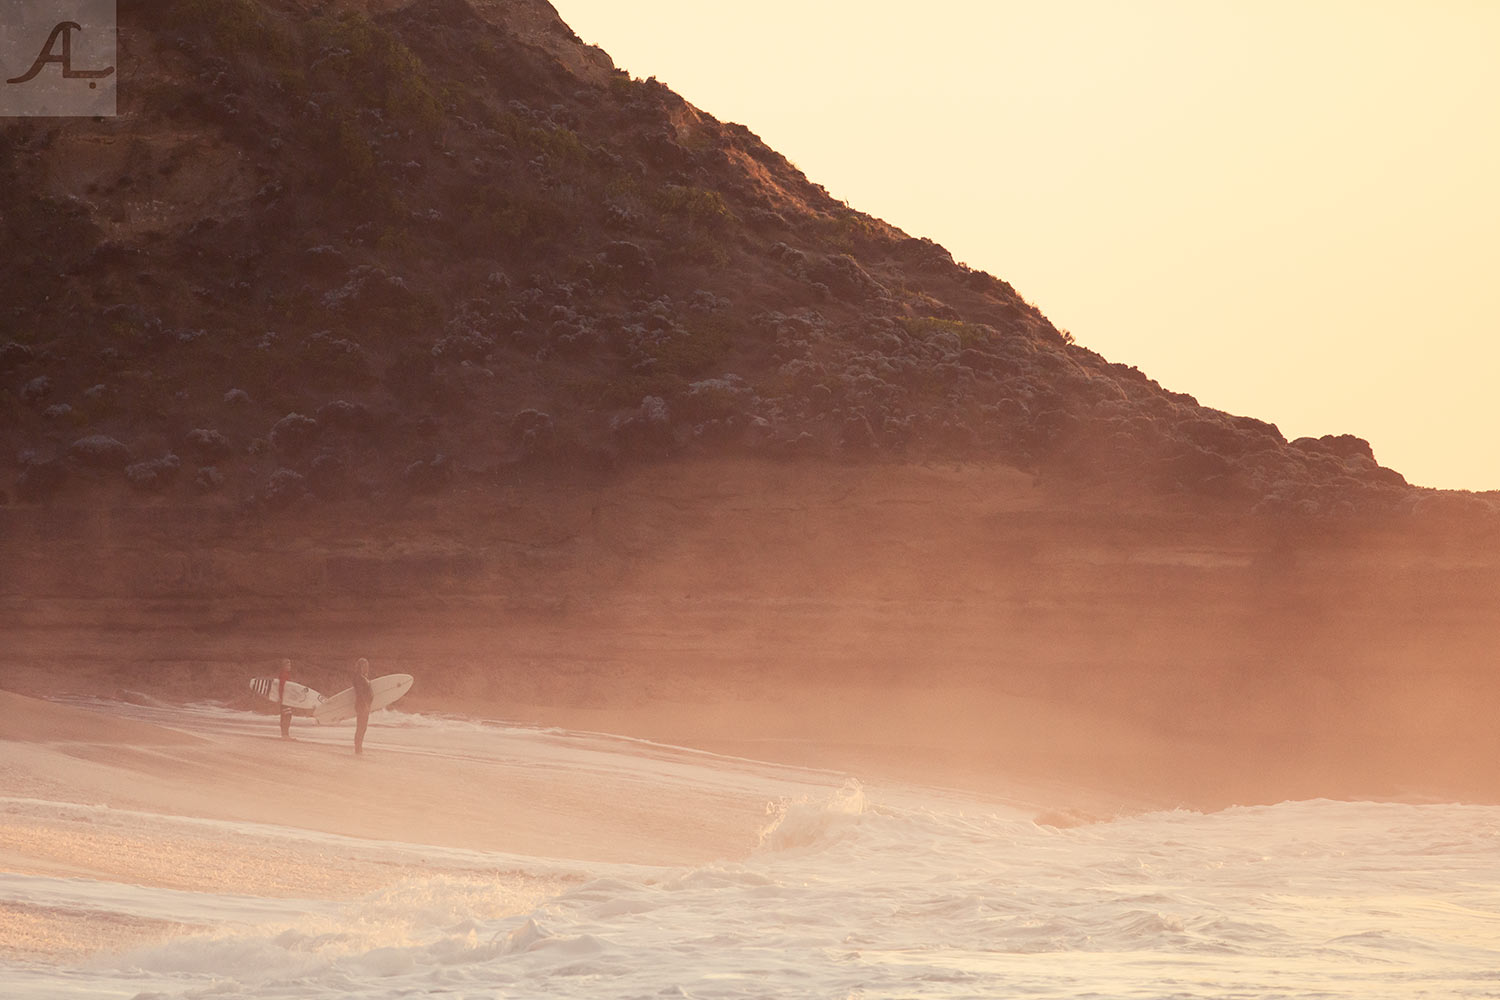 1-amy-lobb-bells-beach-local-surfers.jpg